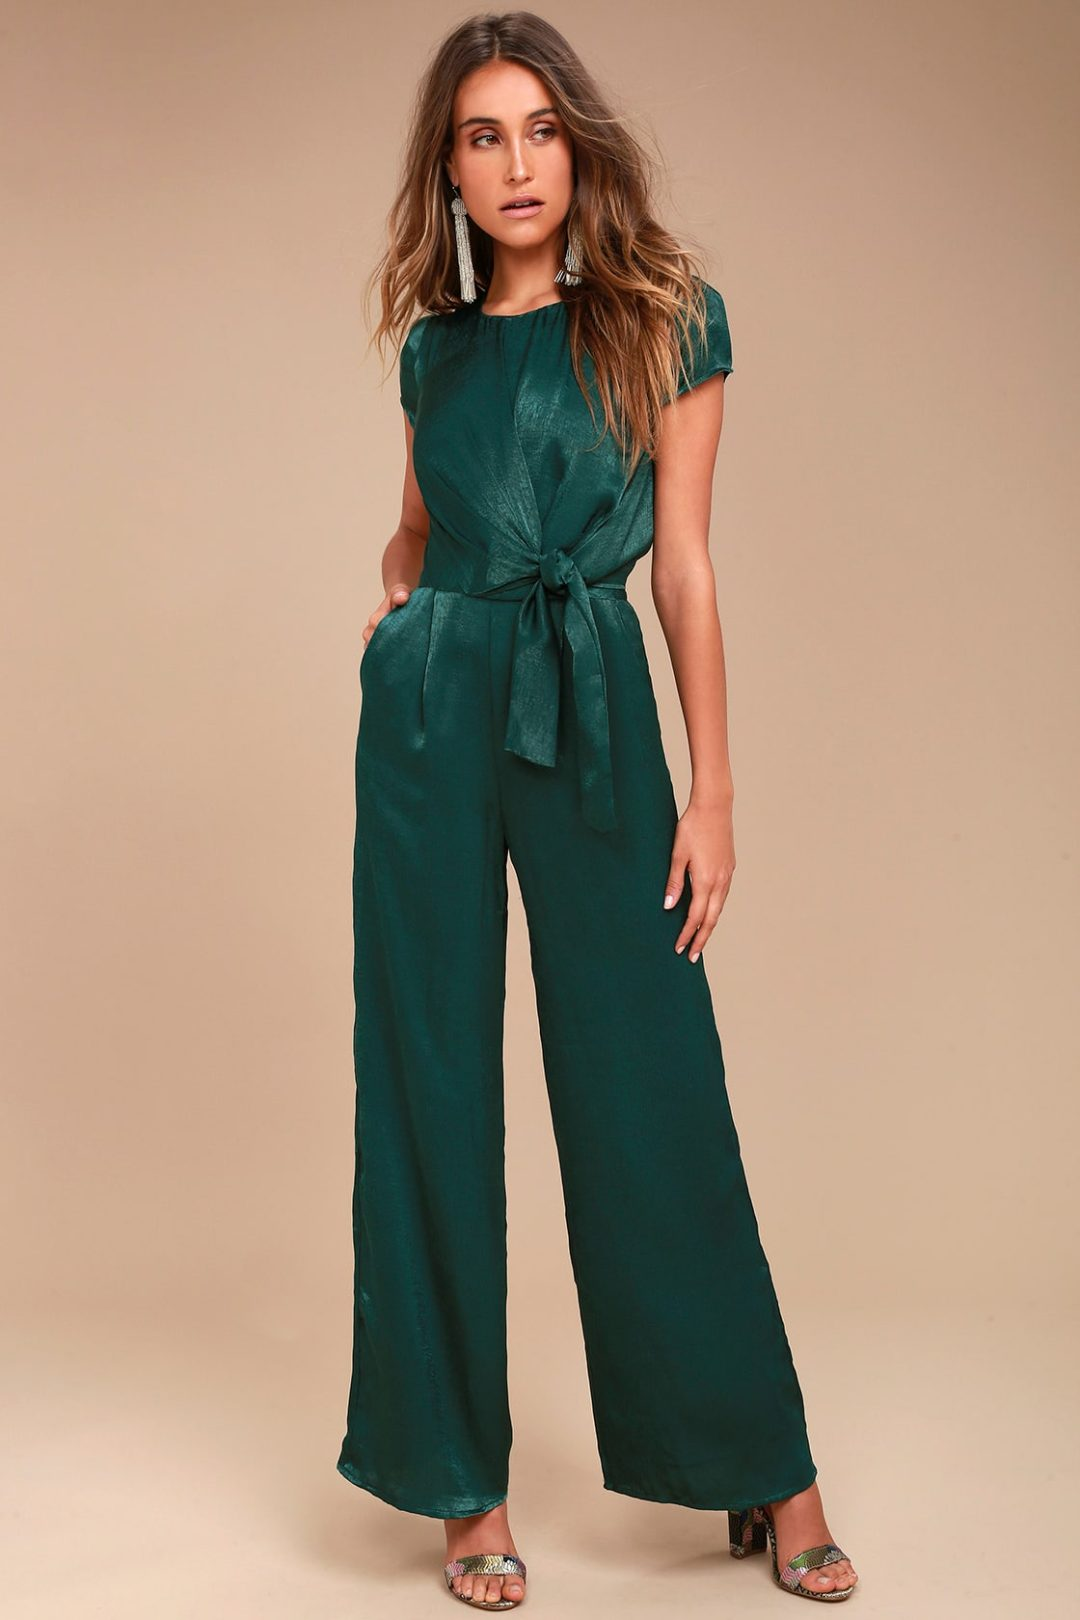 Emerald green pant suit for mother of groom